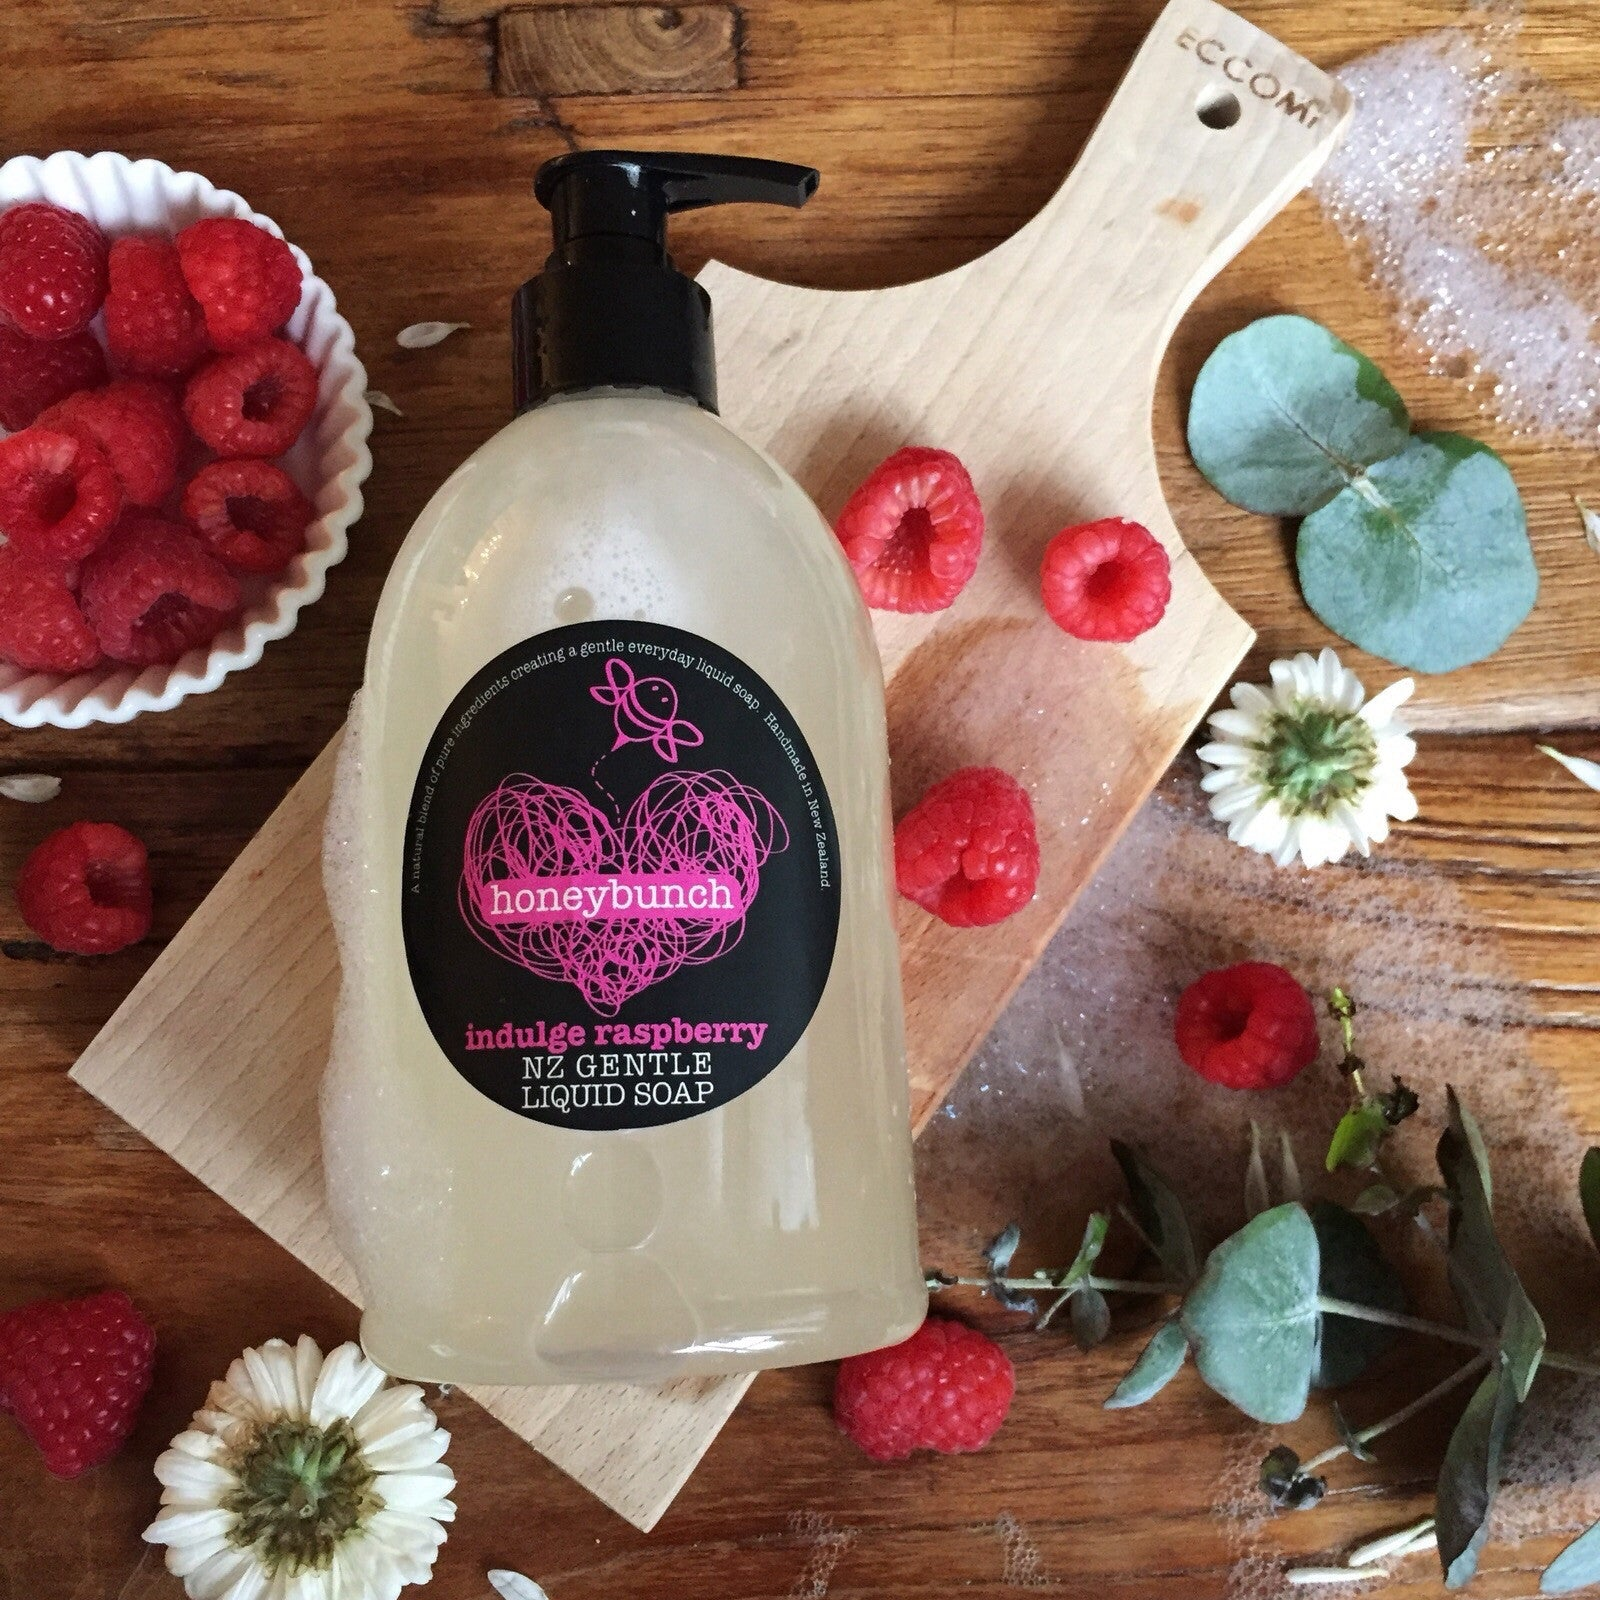 Indulge raspberry liquid soap ..